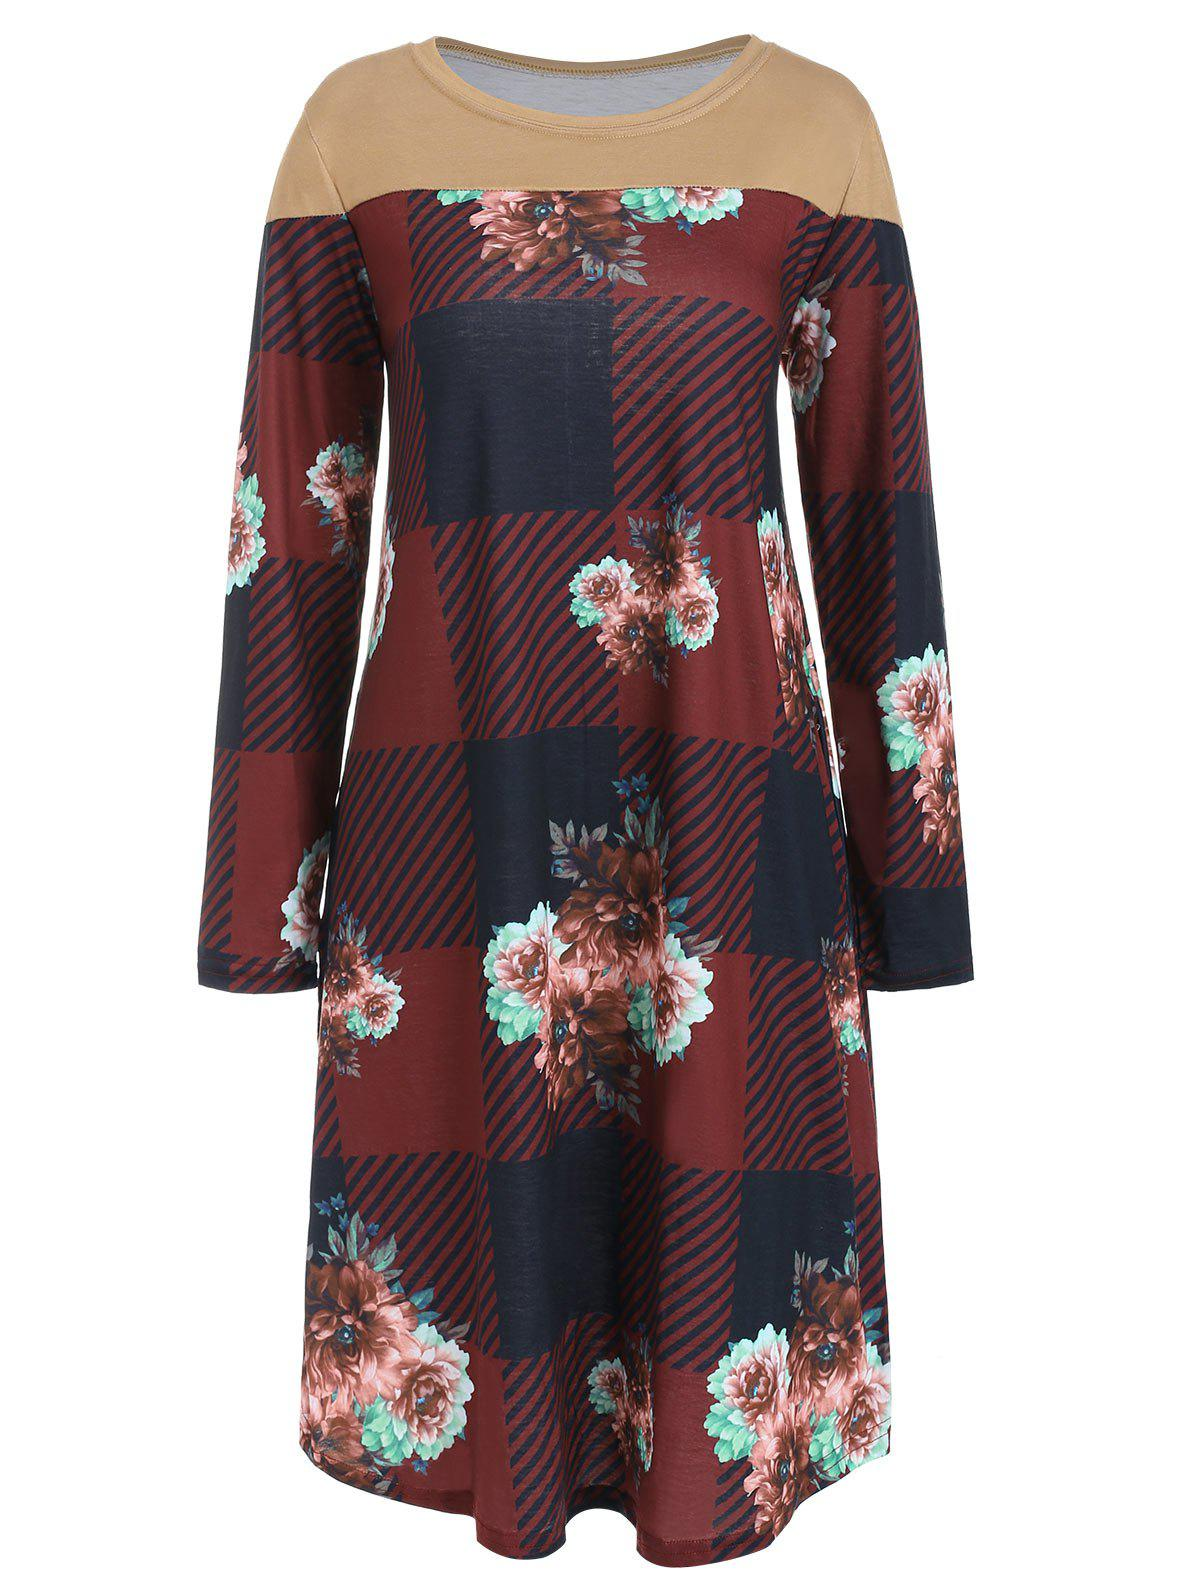 Affordable Checked Floral Print Long Sleeve Dress